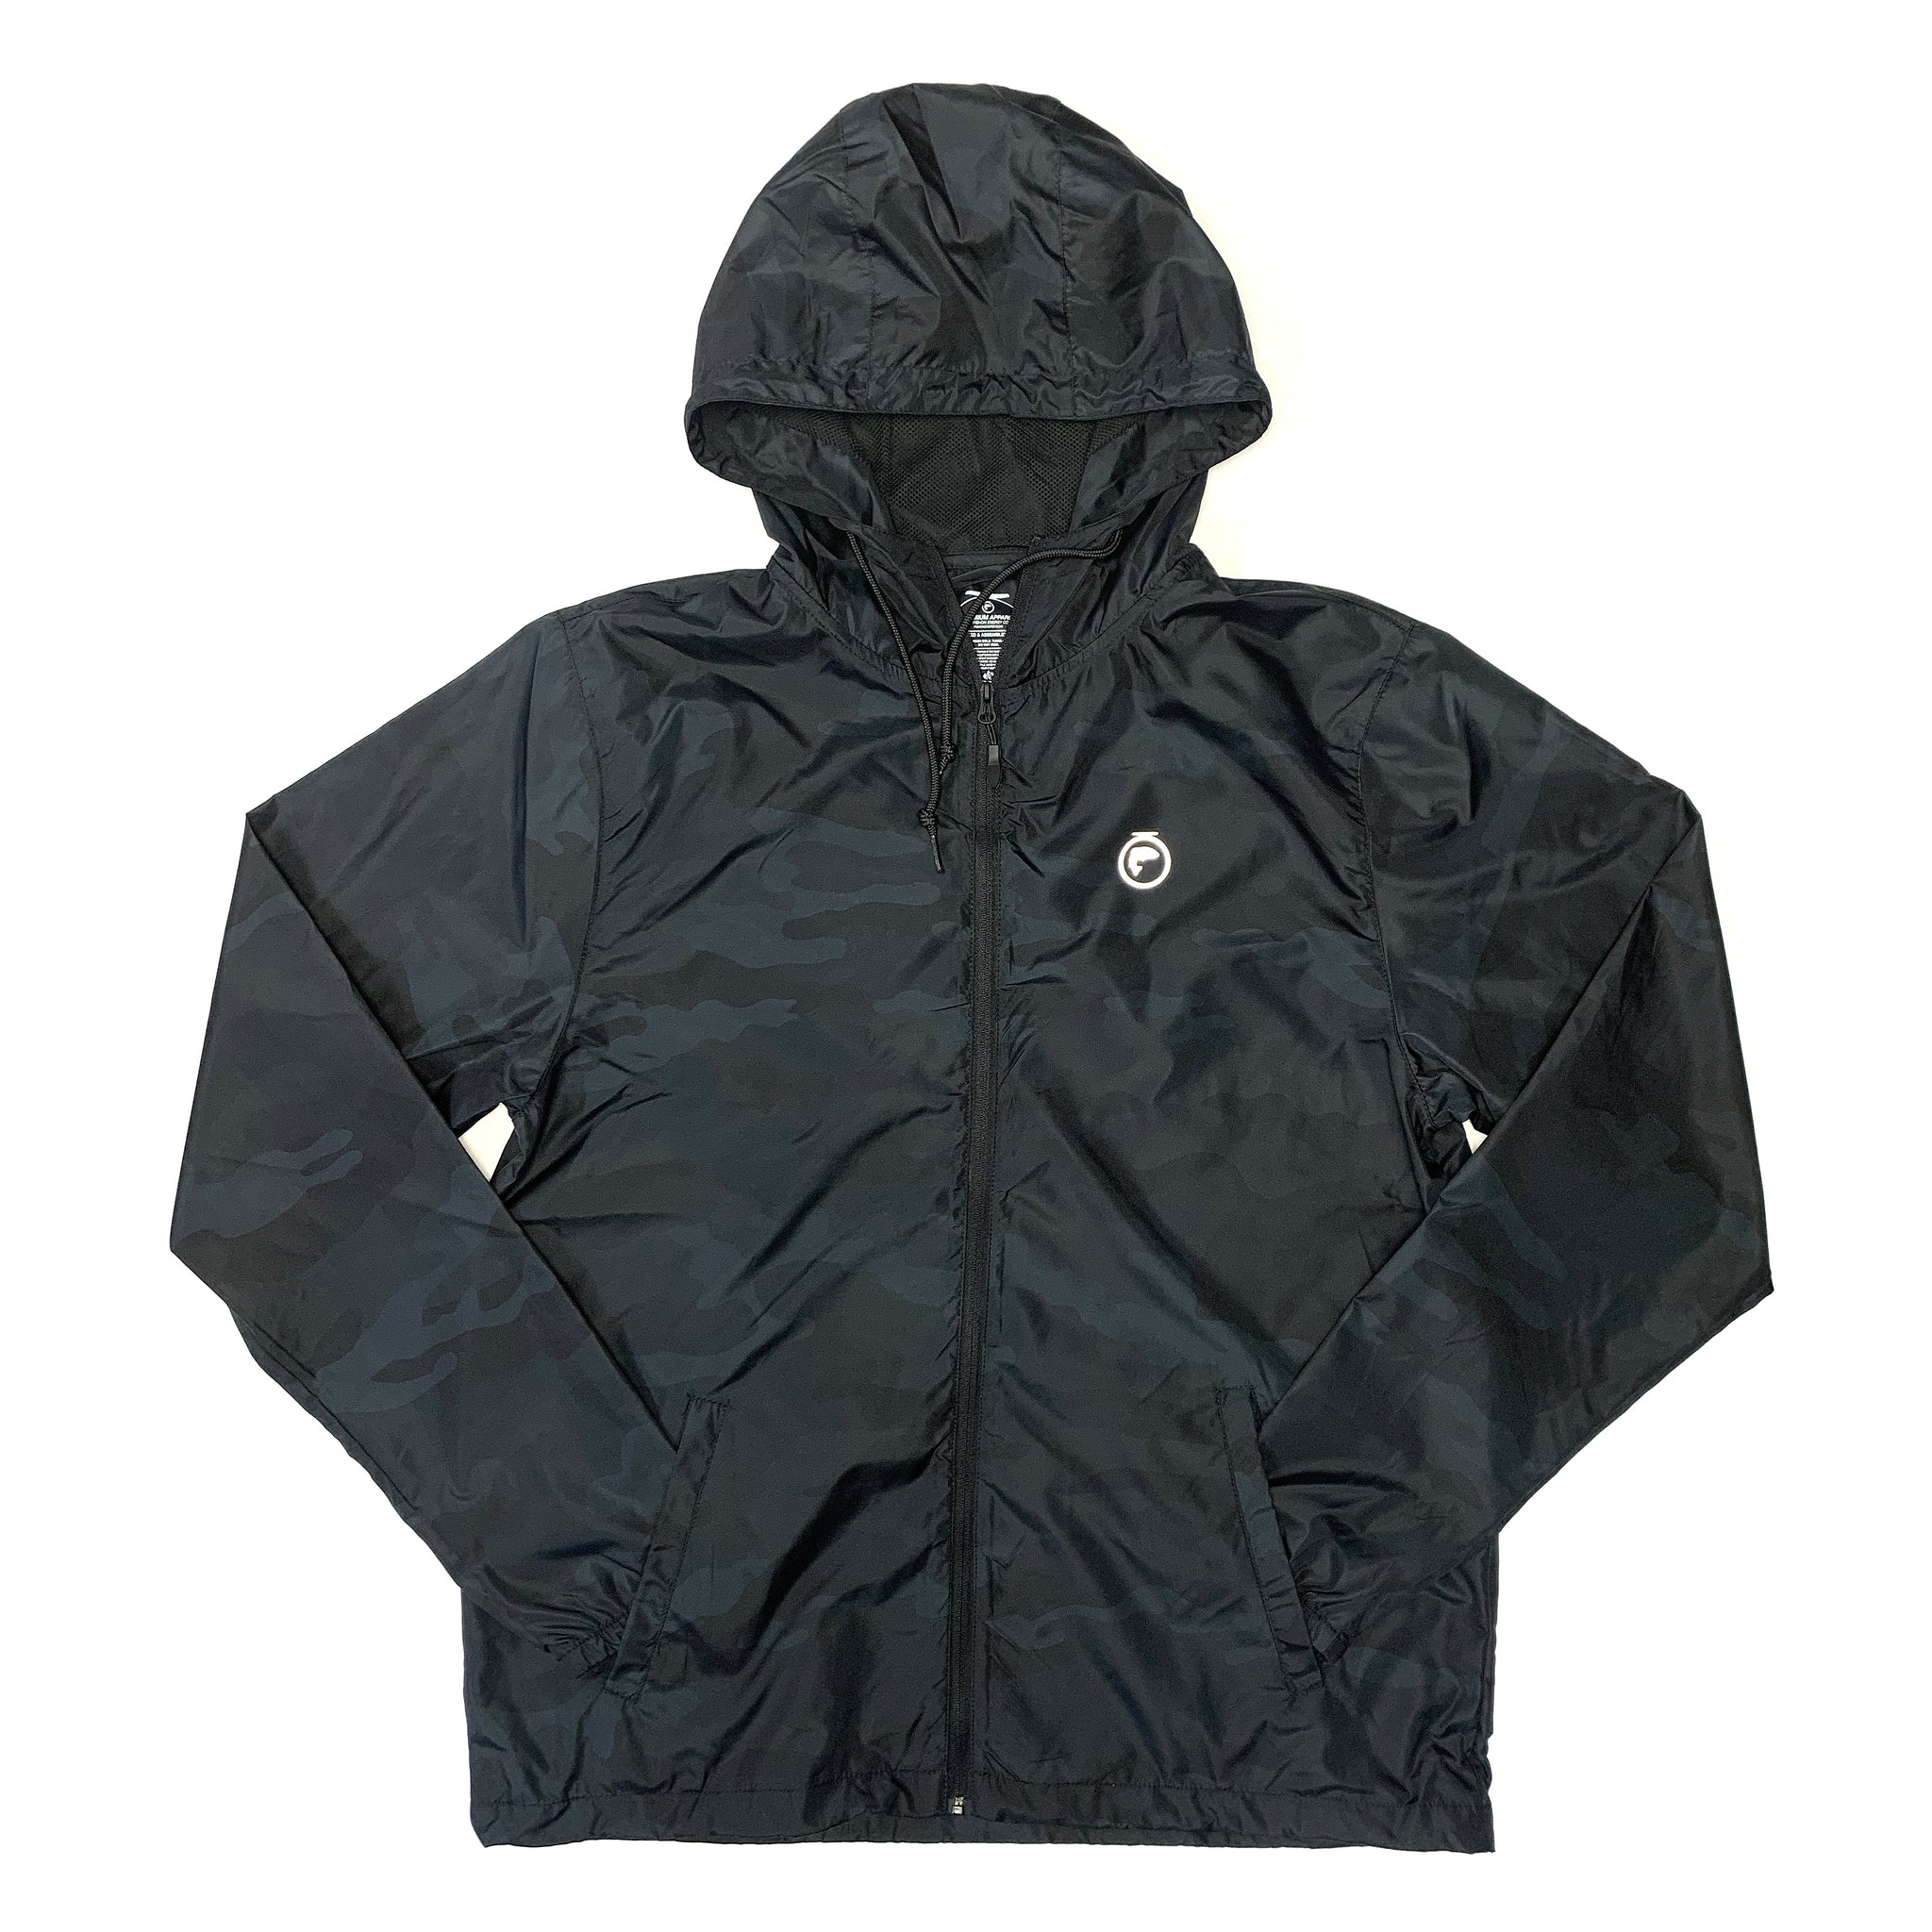 Ultra Lightweight Windbreaker Jacket - Black Camo